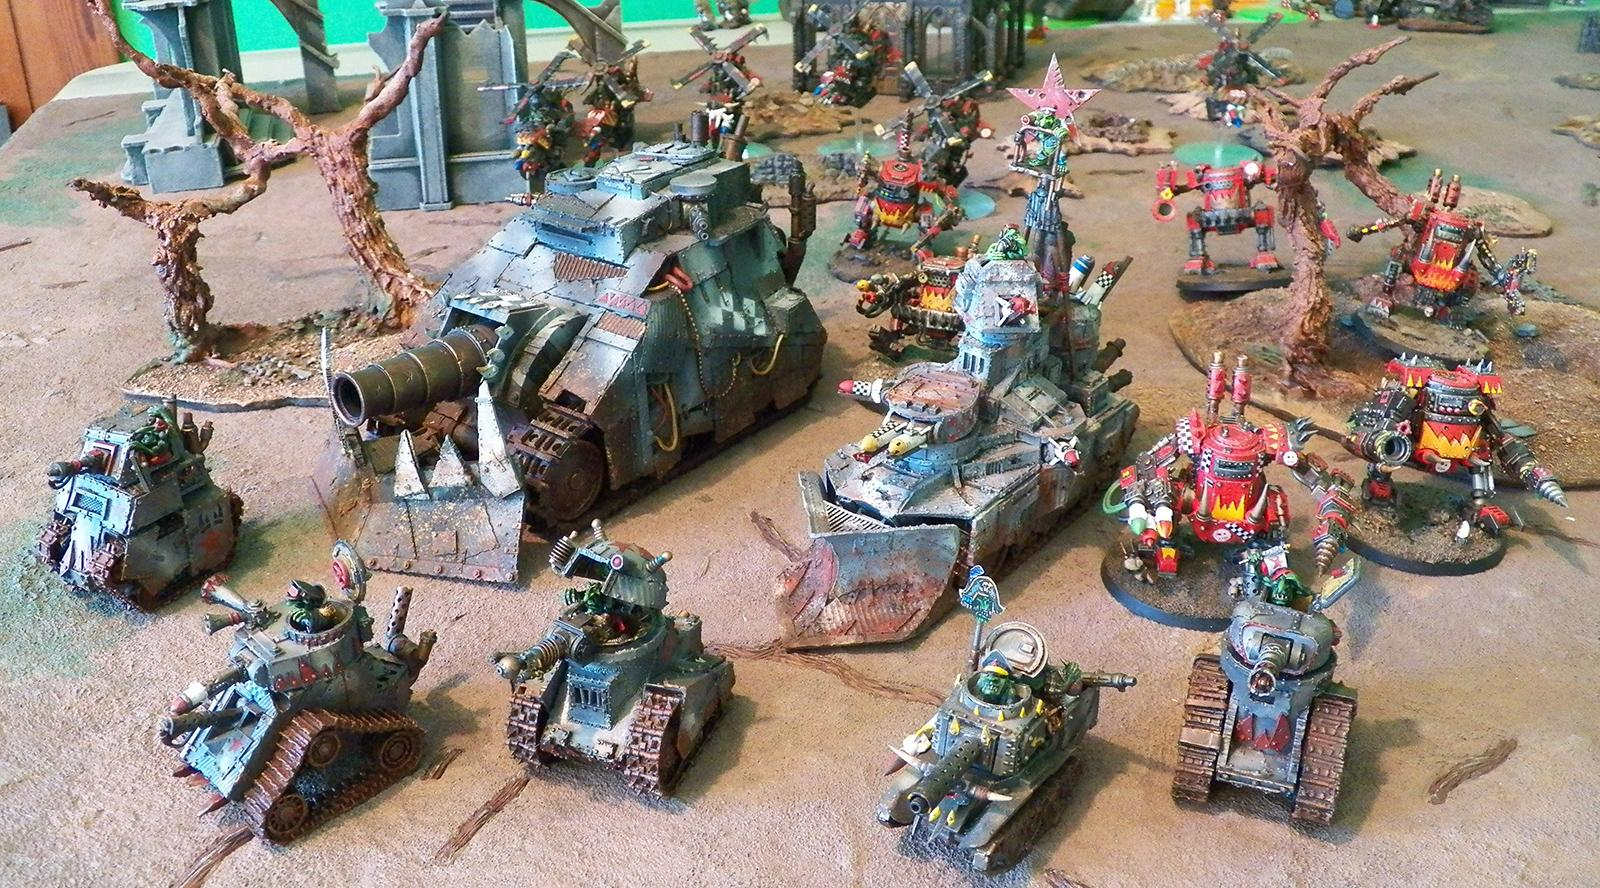 Conversion, Forge World, Grot Revolution, Grots, Orks, Ouze, Revolution, Salt Weathering, Warhammer 40,000